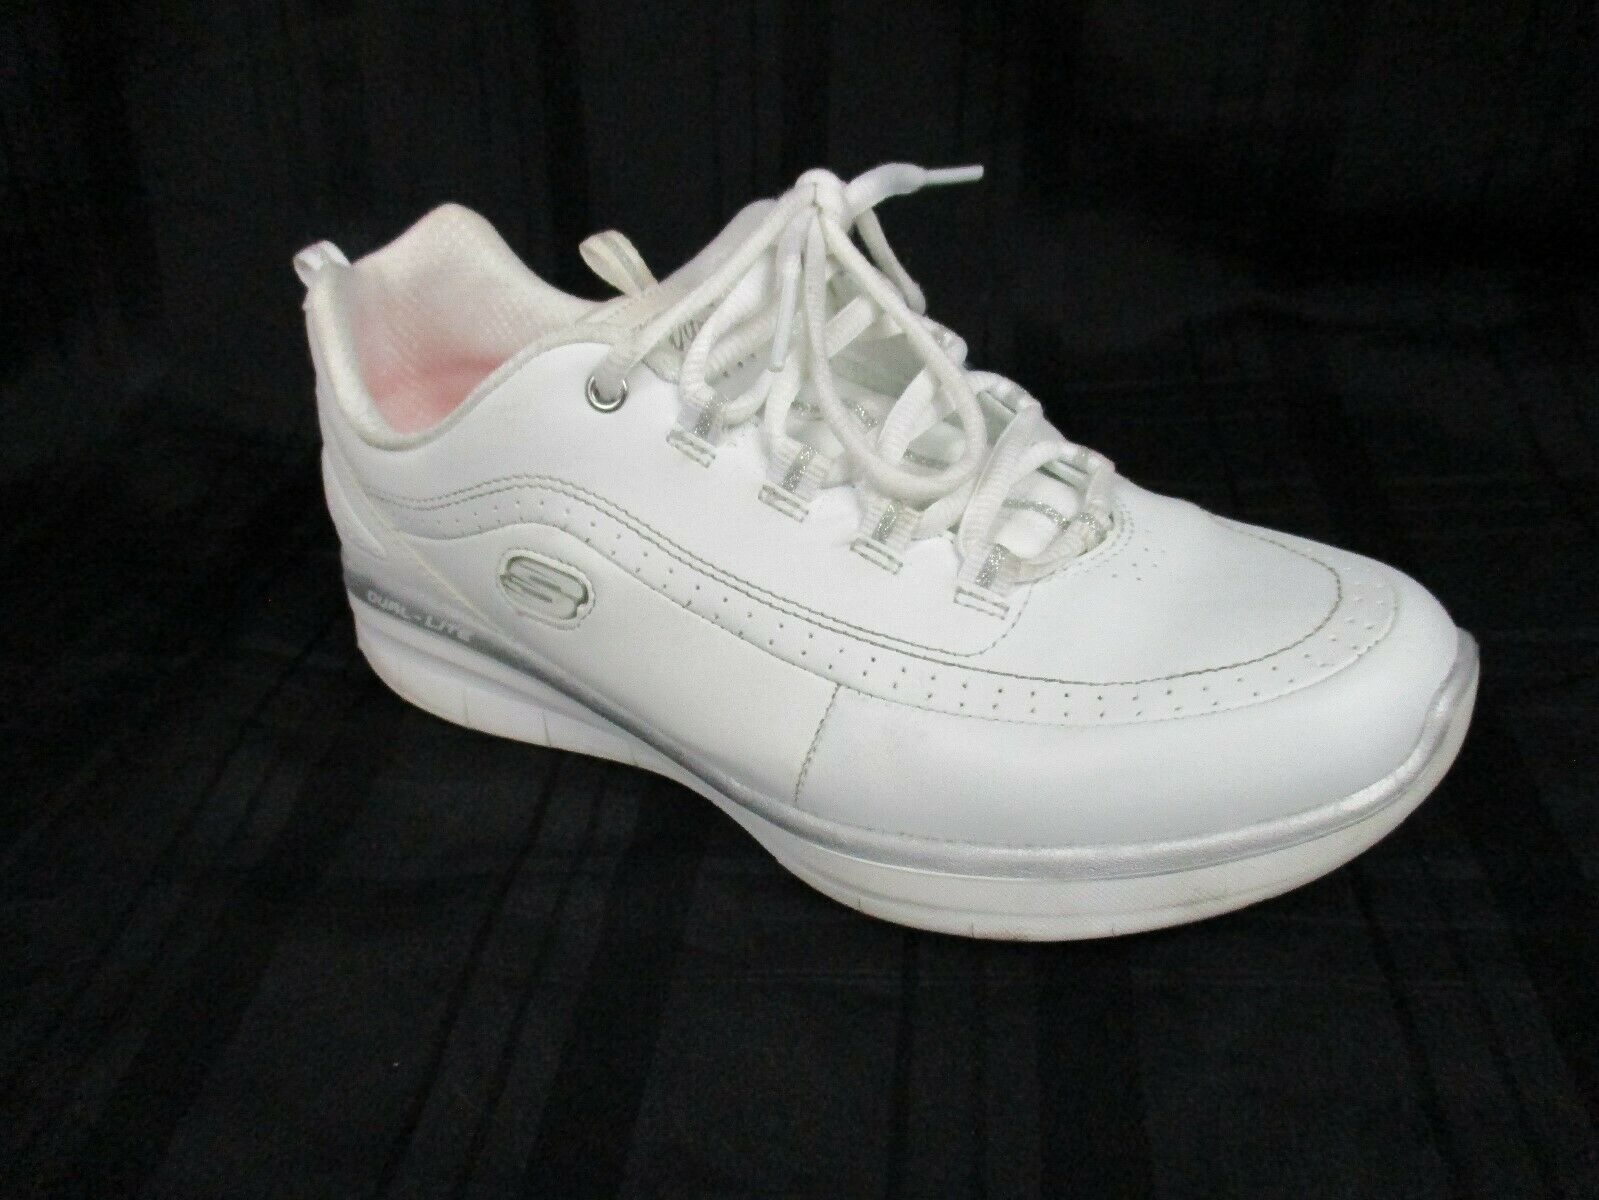 Skechers Sport Women's Synergy 2.0 Fashion Sneakers Memory Foam White Sliver 10